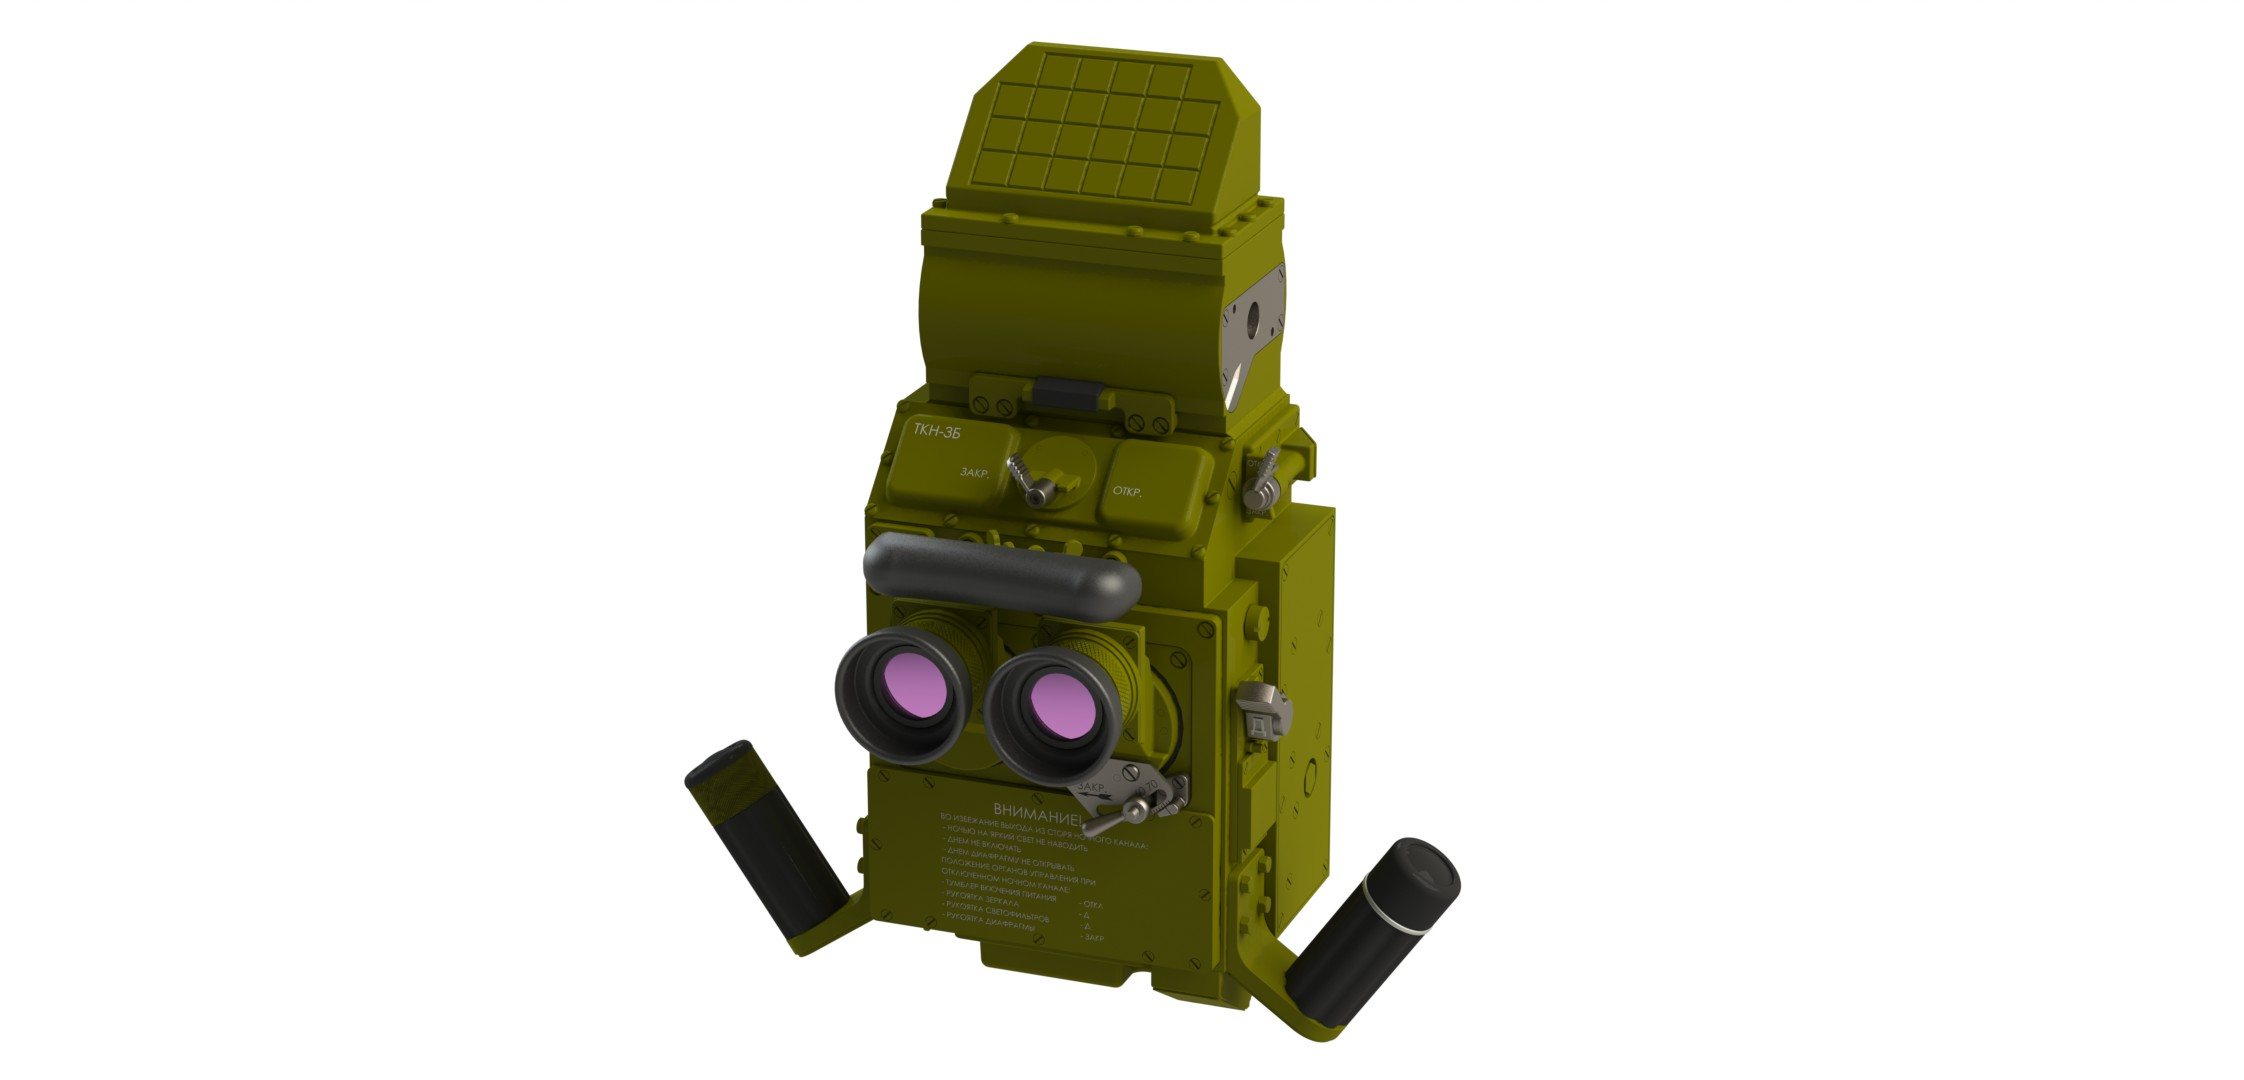 Modernization night vision devices of armored vehicles